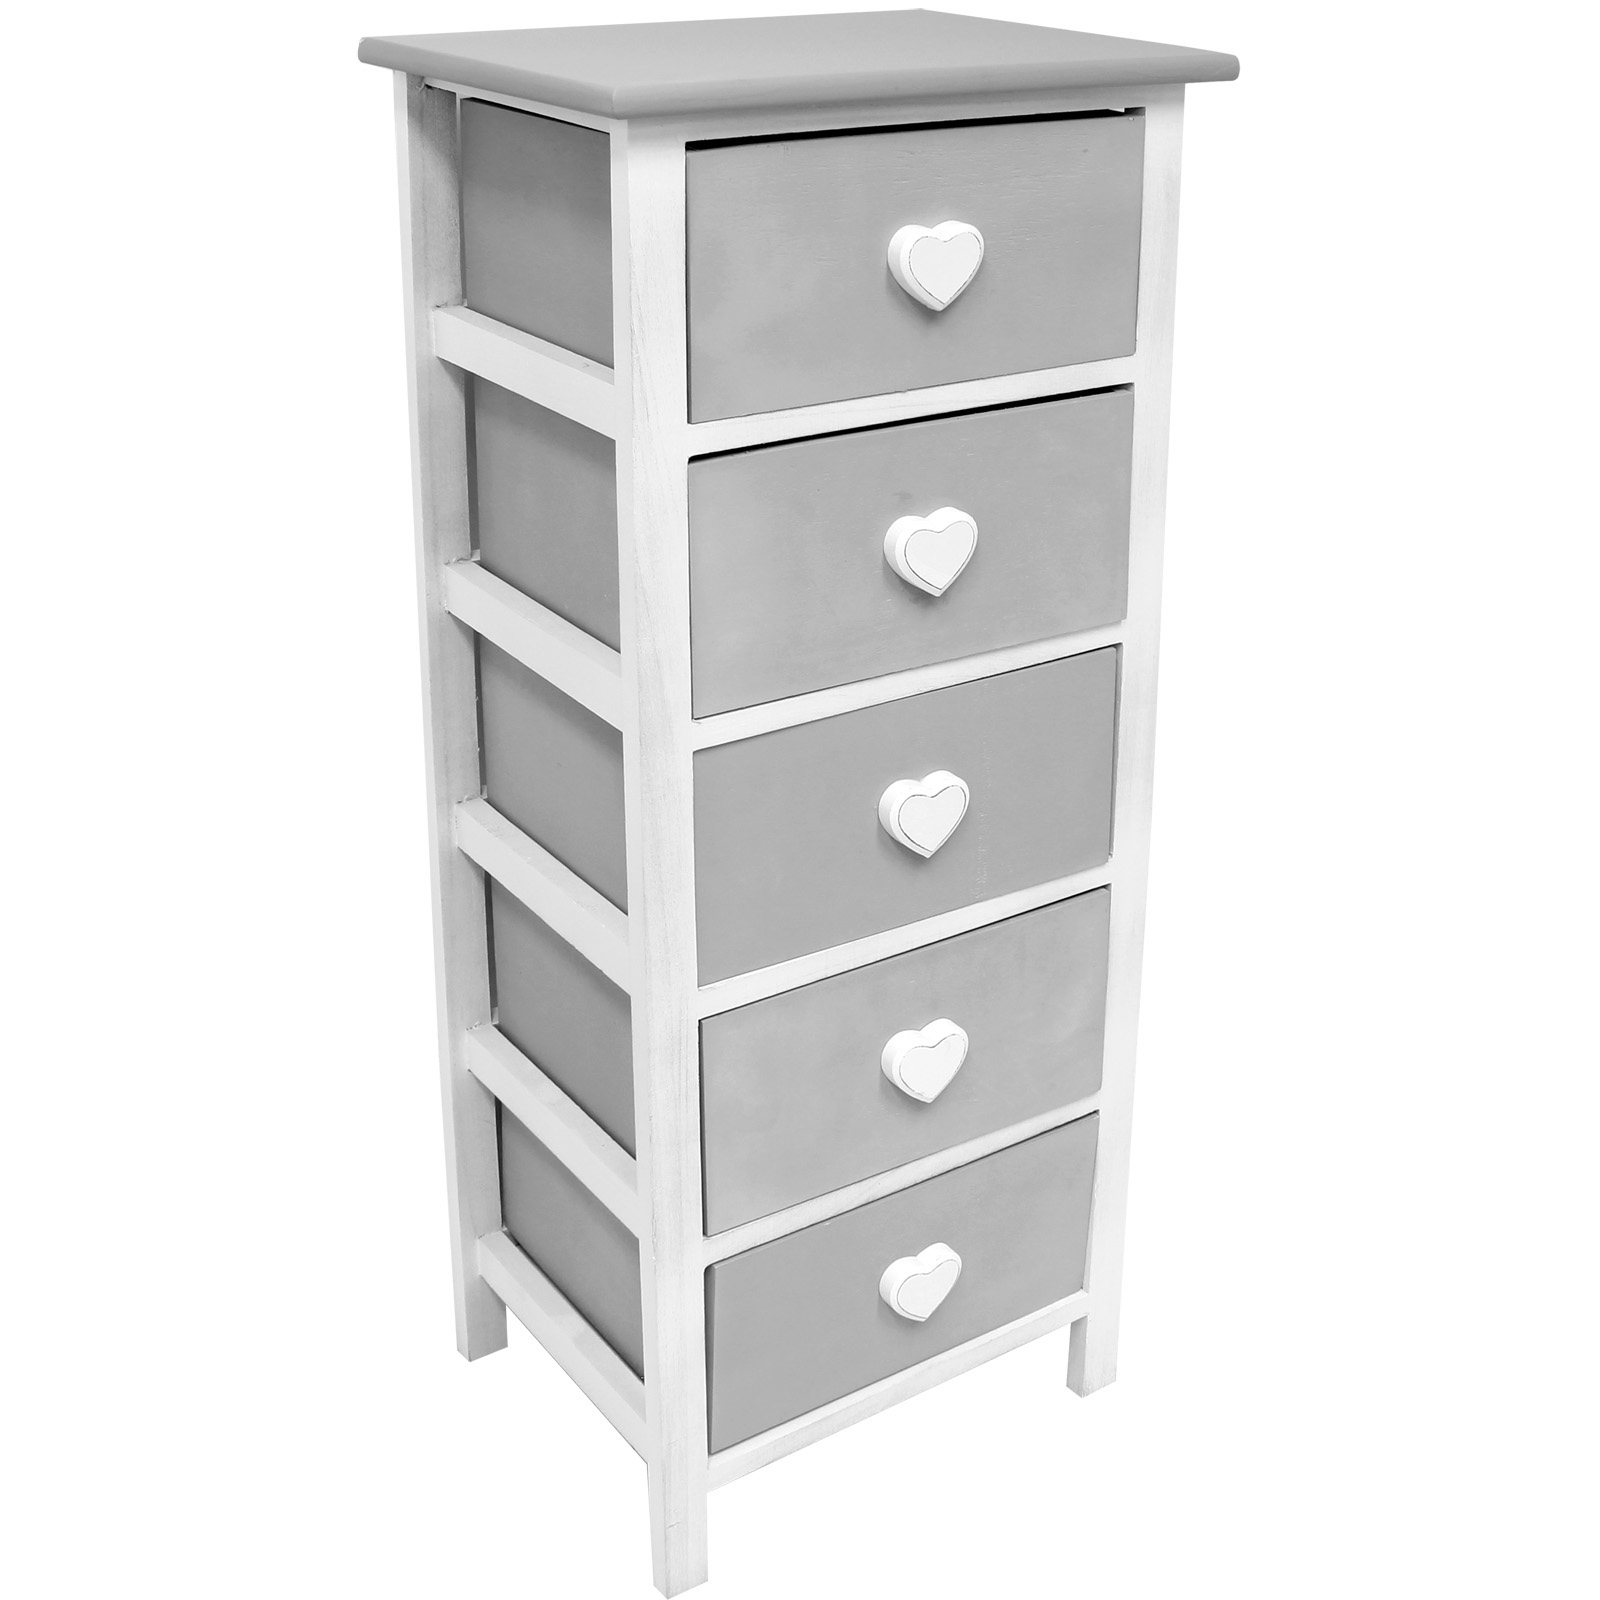 Hartleys white grey 5 drawer heart storage unit chest of - Bedroom storage cabinets with drawers ...